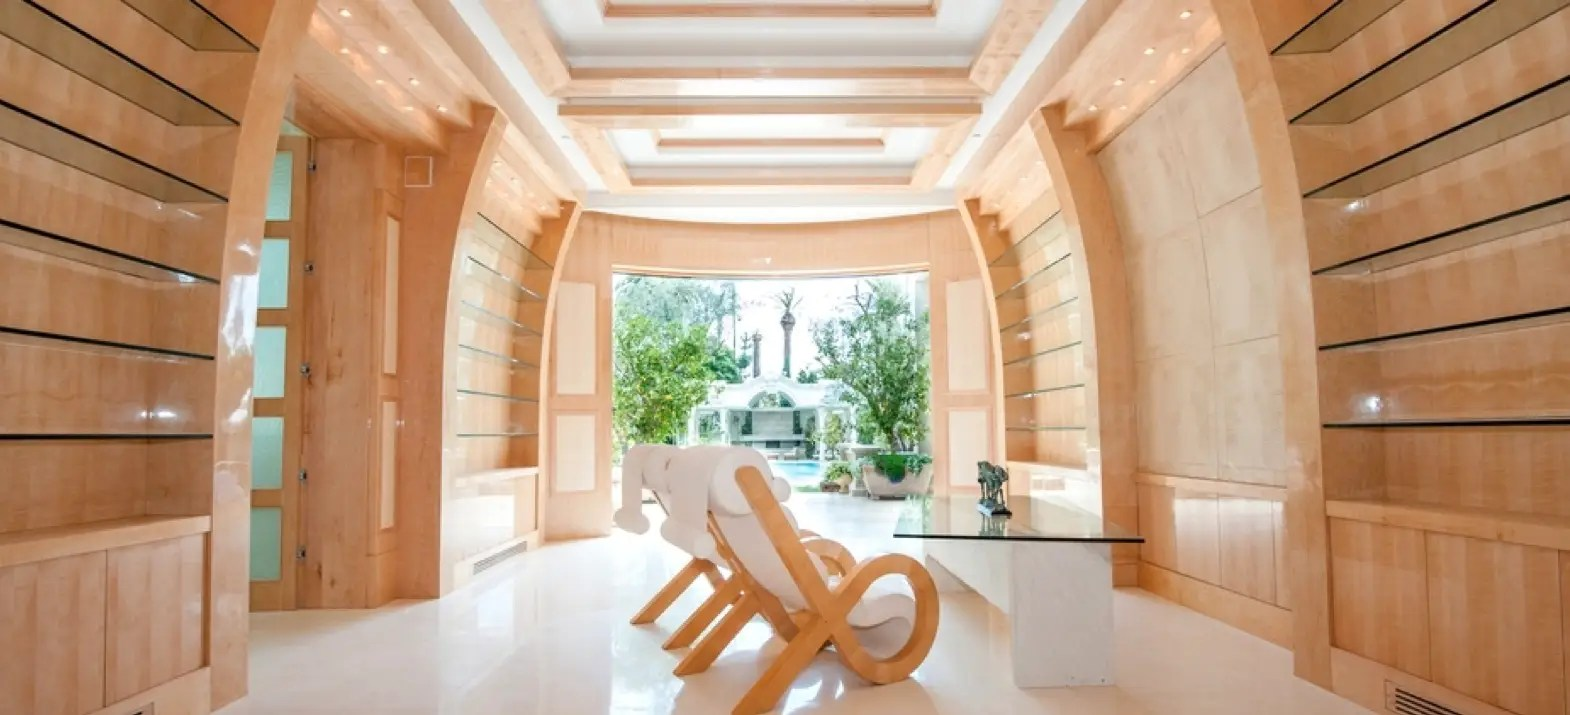 The home took designer Mohamed Hadid 15 months to create.